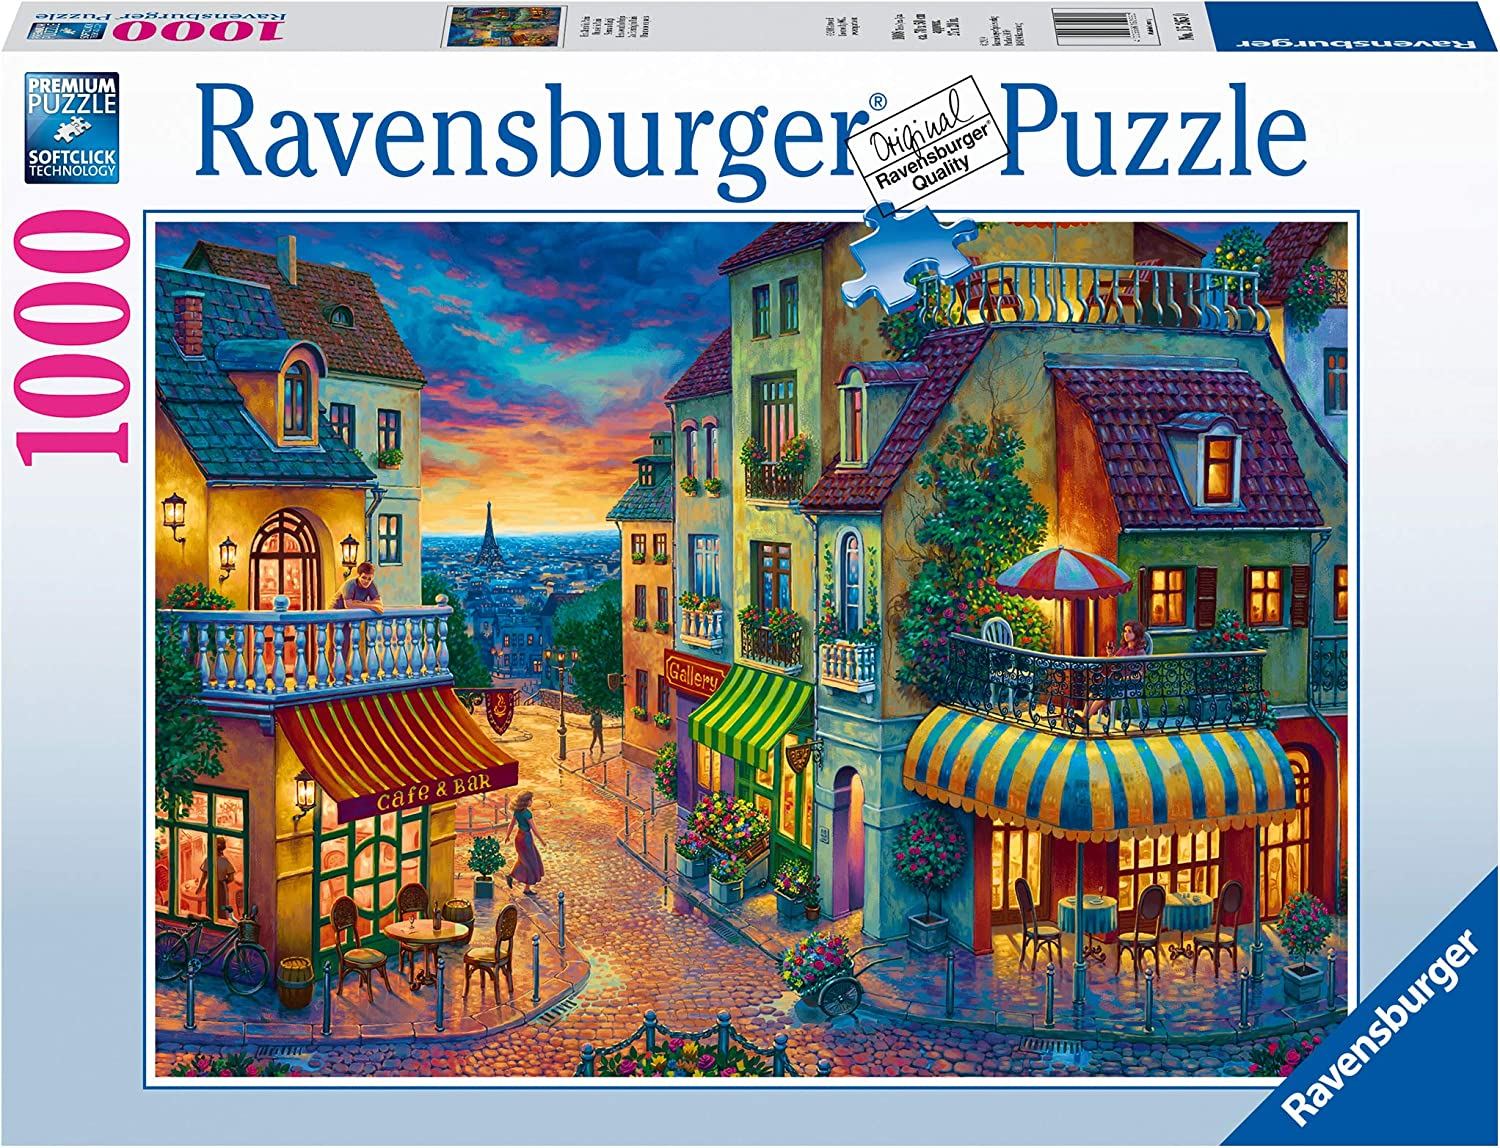 Ravensburger an Evening in Paris 15265 1000 Piece Puzzle for Adults, Every Piece is Unique, Softclick Technology Means Pieces Fit Together Perfectly